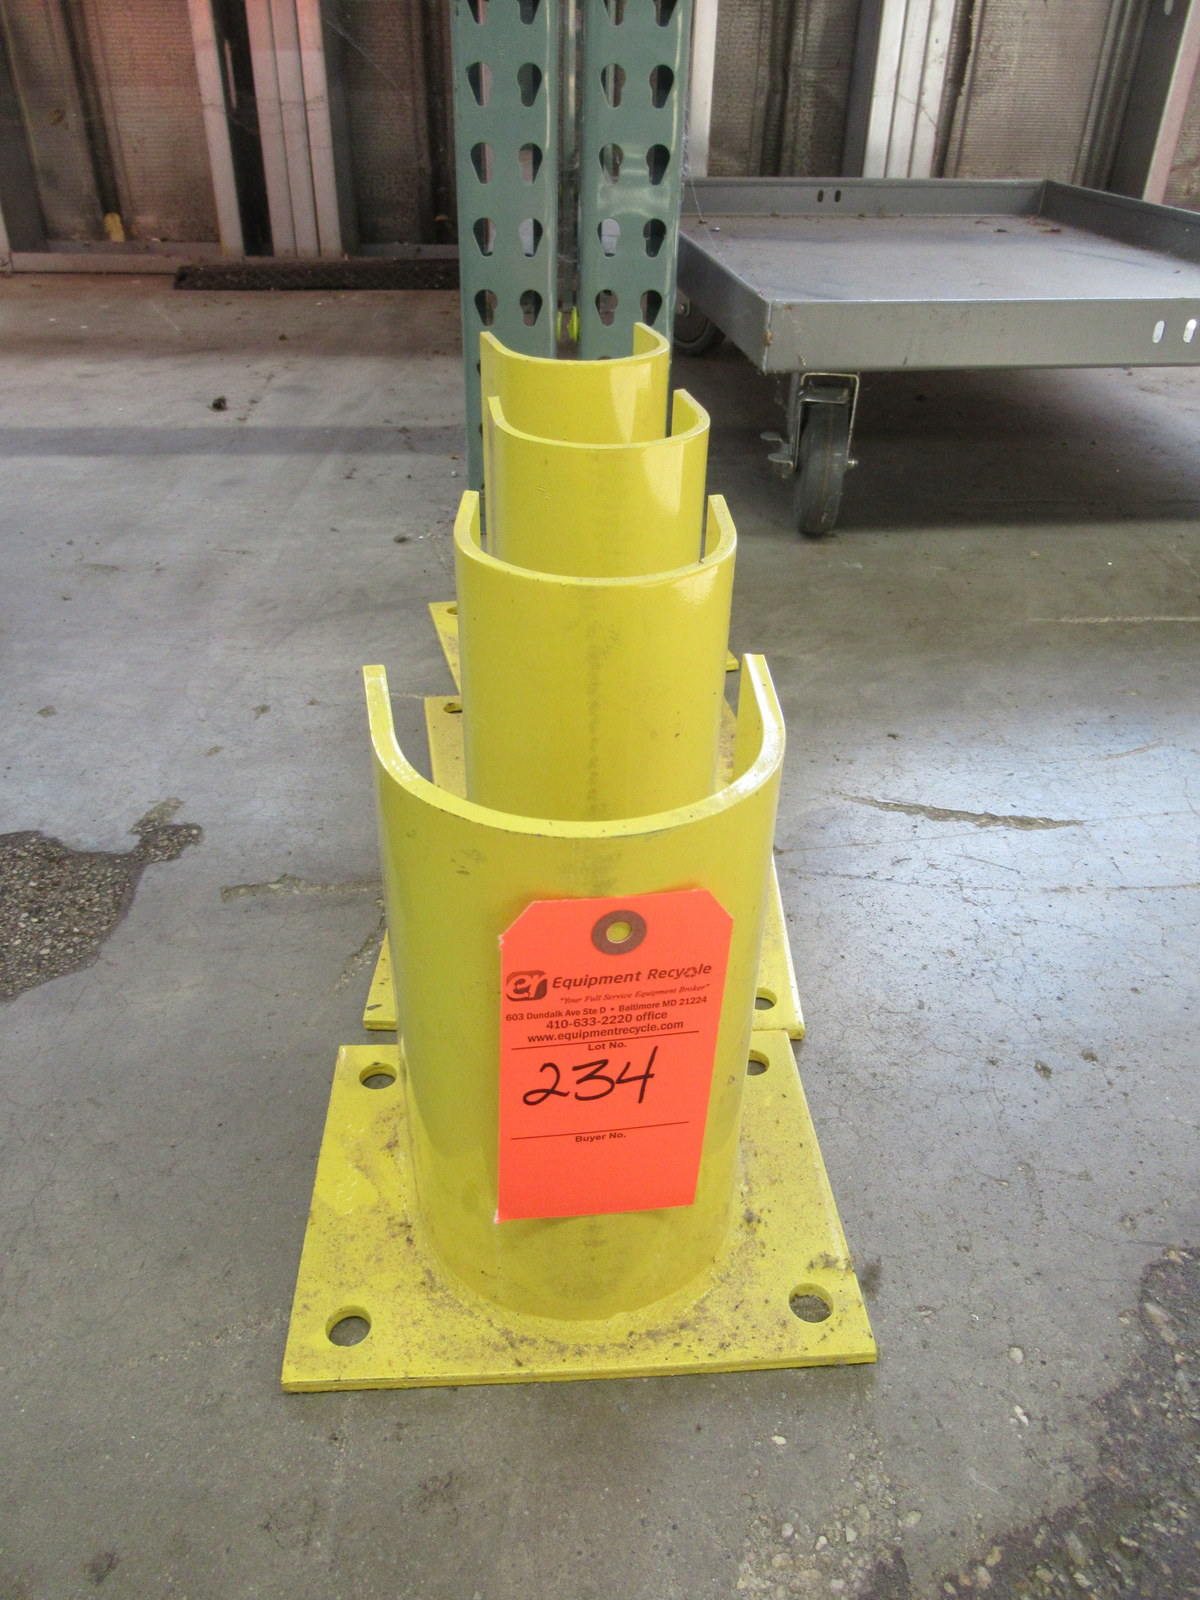 Lot 234 - Lot of 4 Uline Racking Protectors